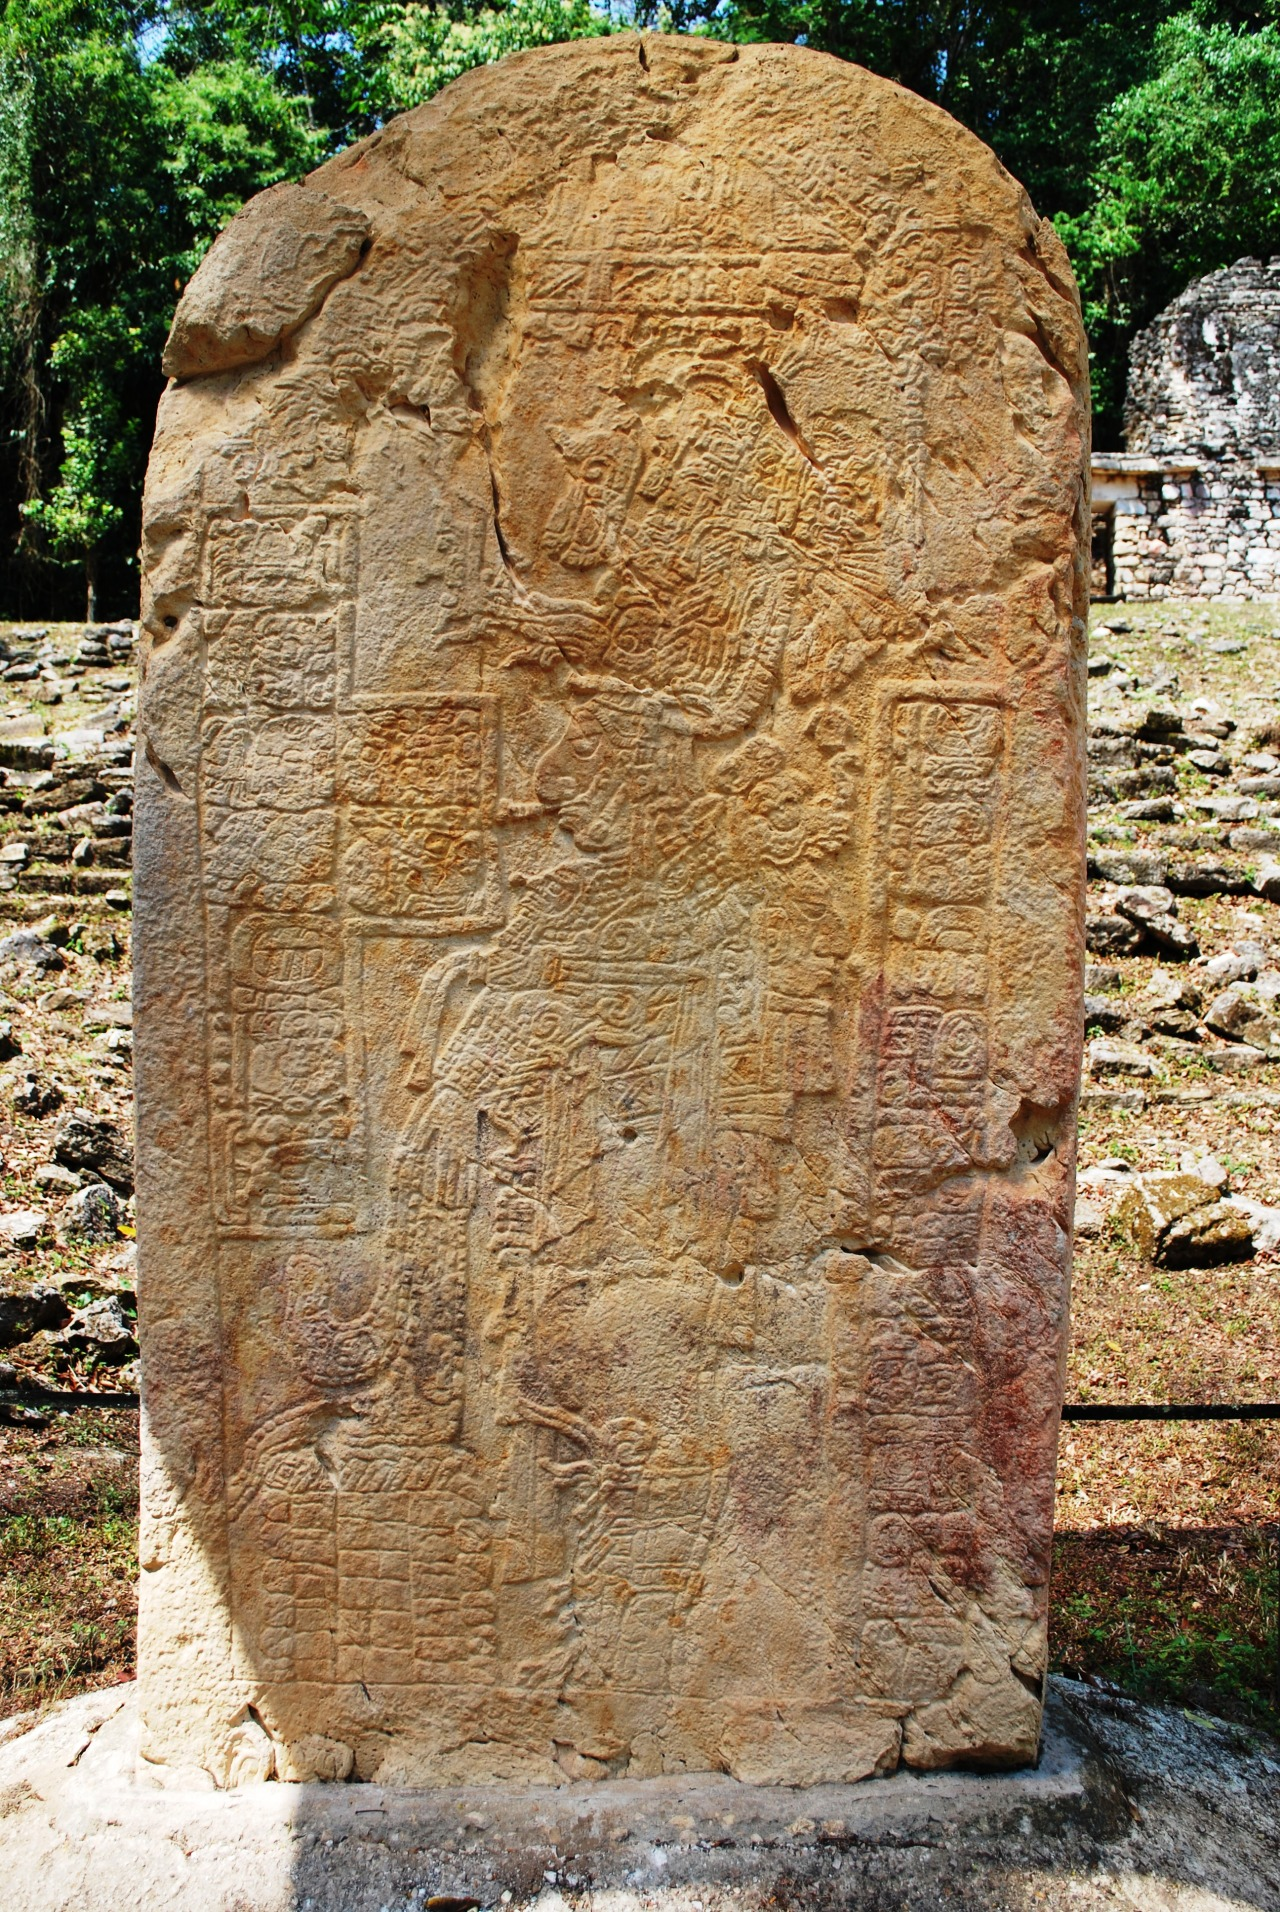 Ancient Mayan unlabled stele in the Grand Plaza of Yaxchilan, Chiapas, Mexico. Photo courtesy Thelmadatter